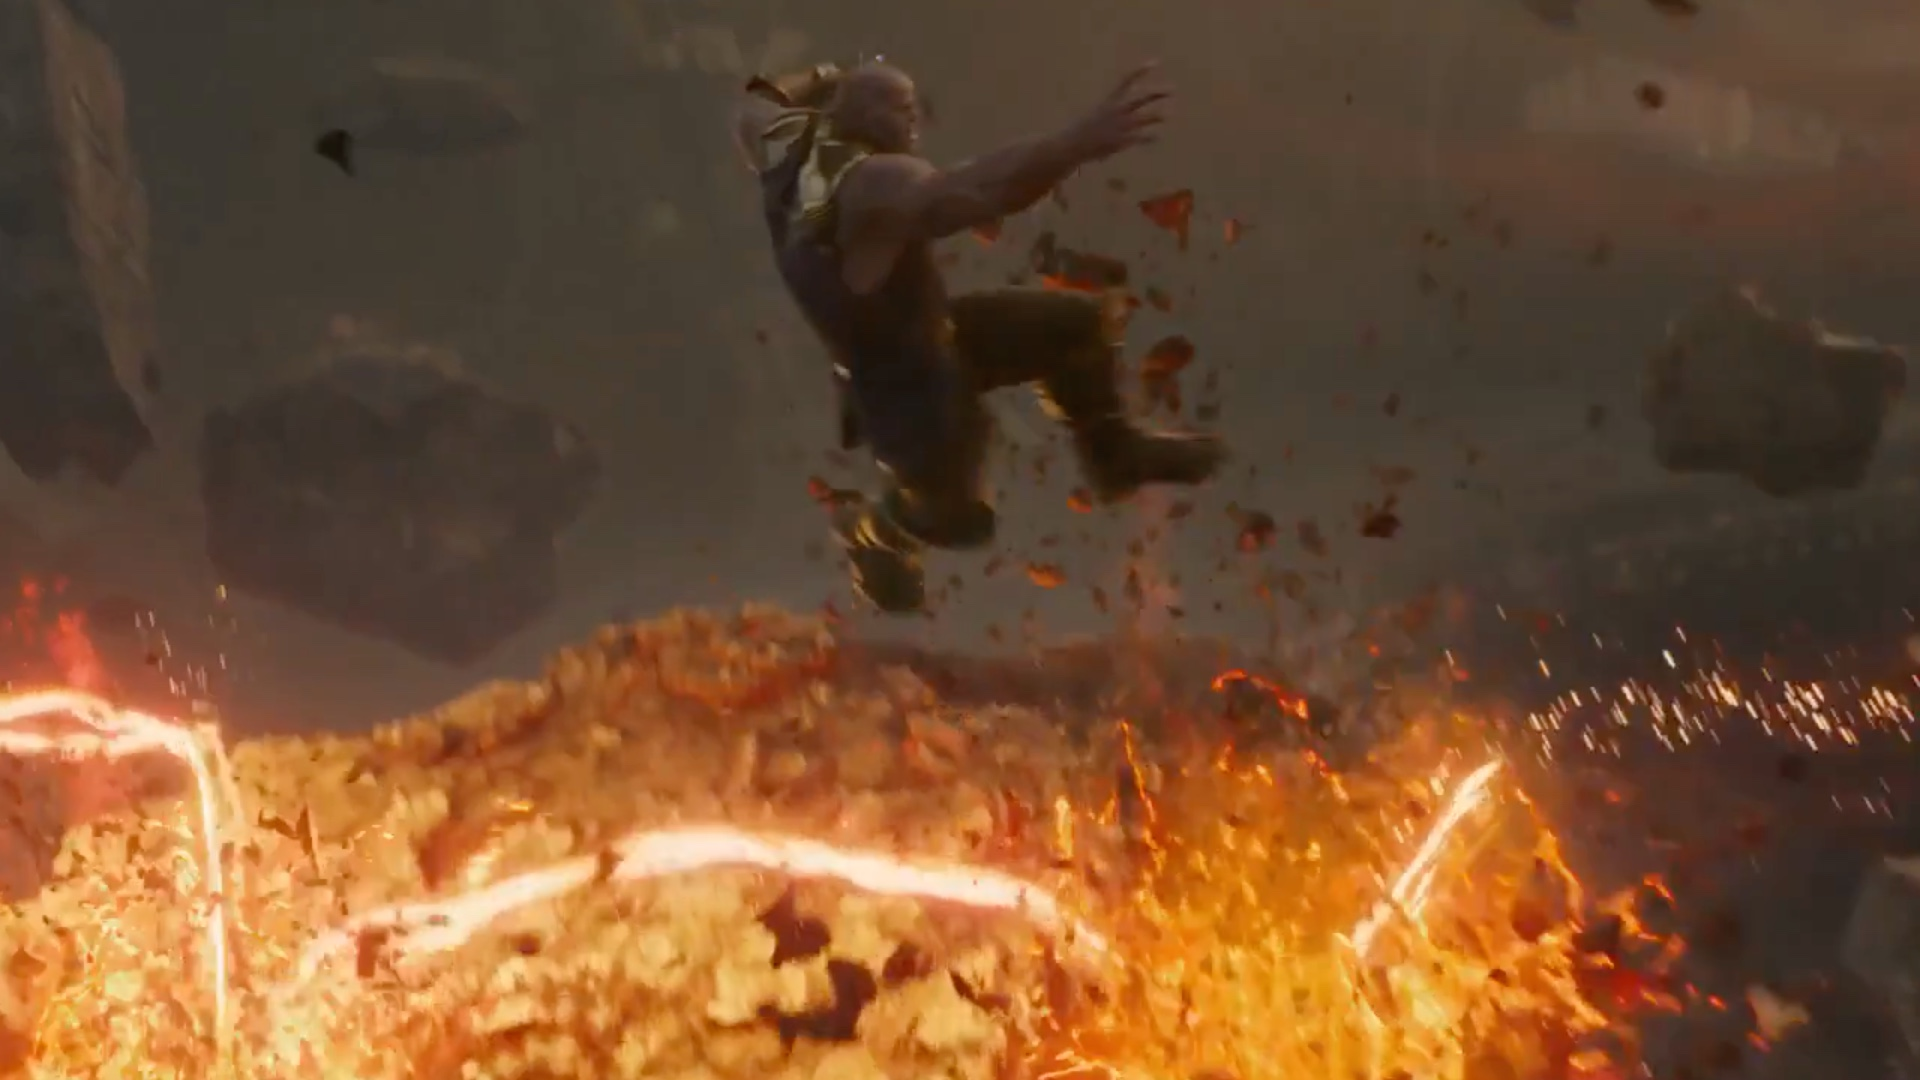 heart-pounding-new-promo-spot-for-avengers-infinity-war-with-tons-of-new-footage-and-a-spider-man-clip-social.jpg